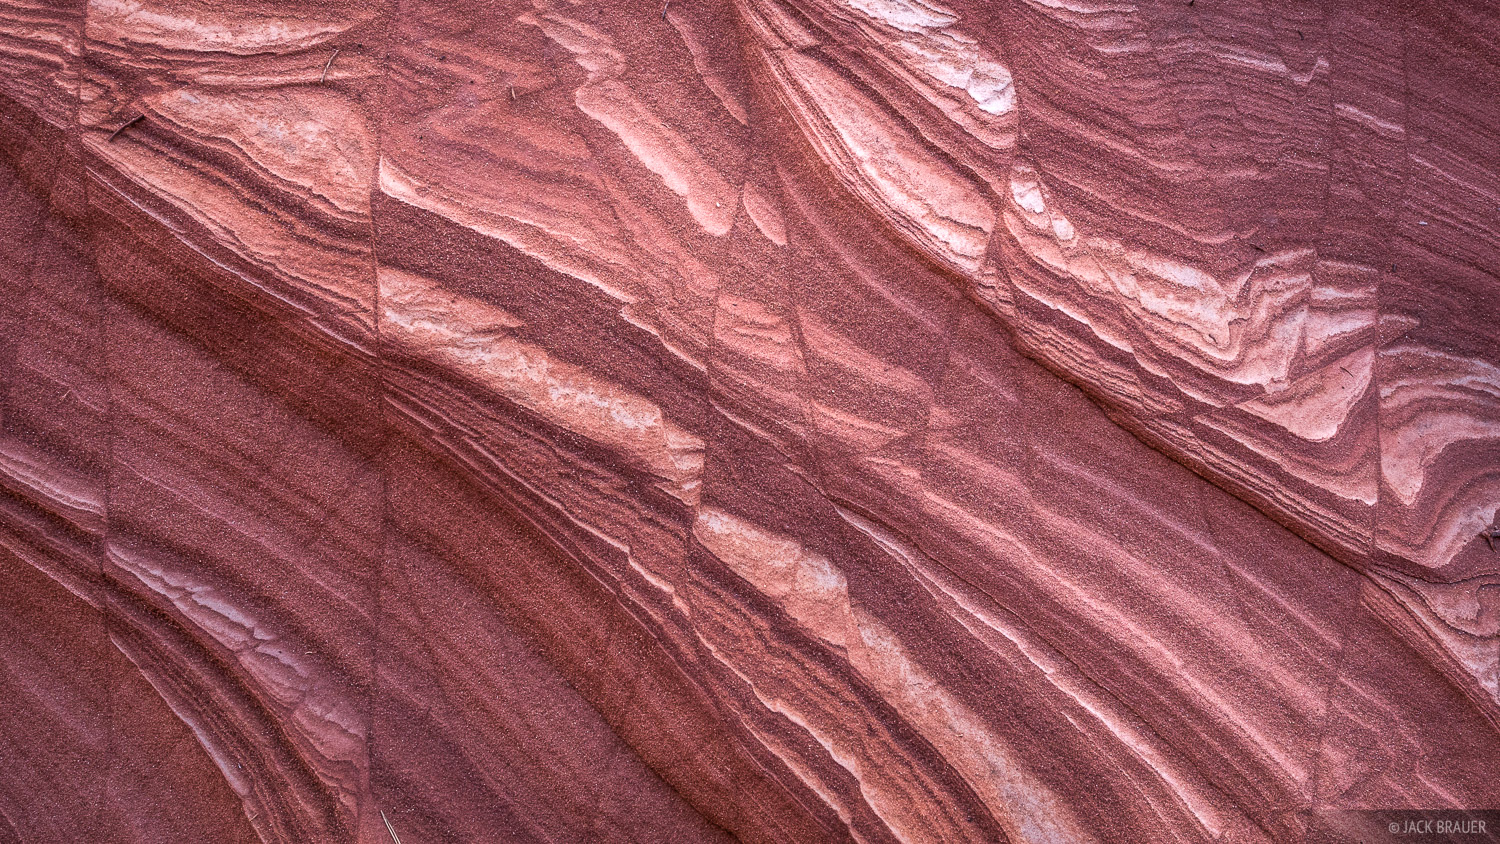 Moonshine Wash,Utah, abstract, sandstone